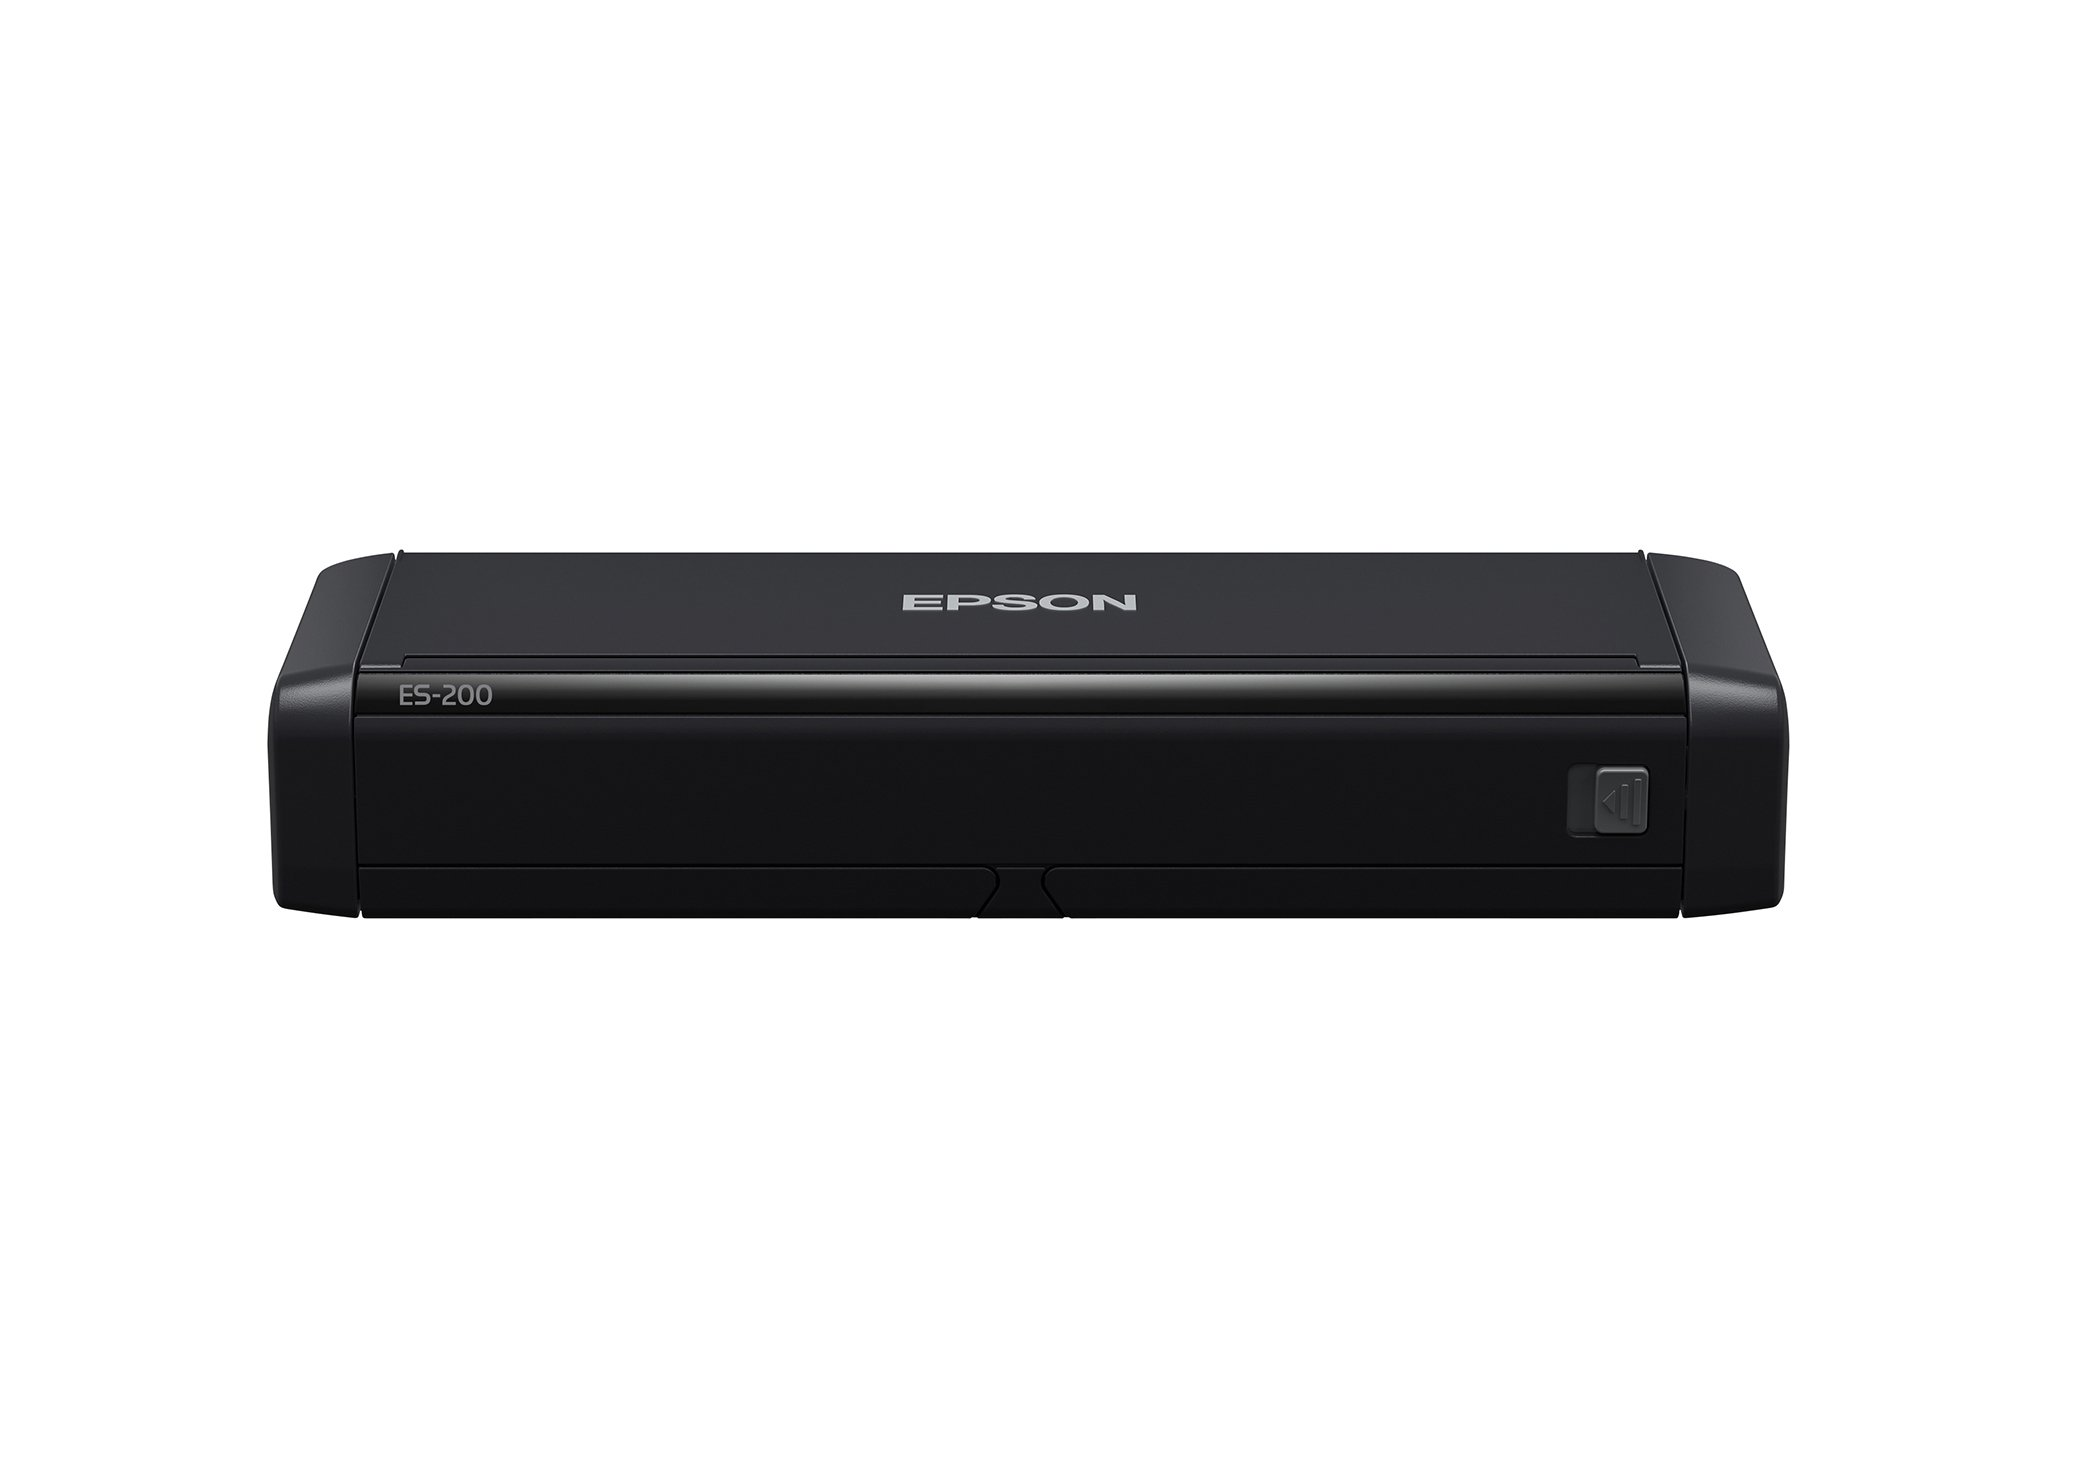 Epson WorkForce ES-200 Color Portable Document Scanner with ADF for PC and Mac, Sheet-fed and Duplex Scanning by Epson (Image #3)